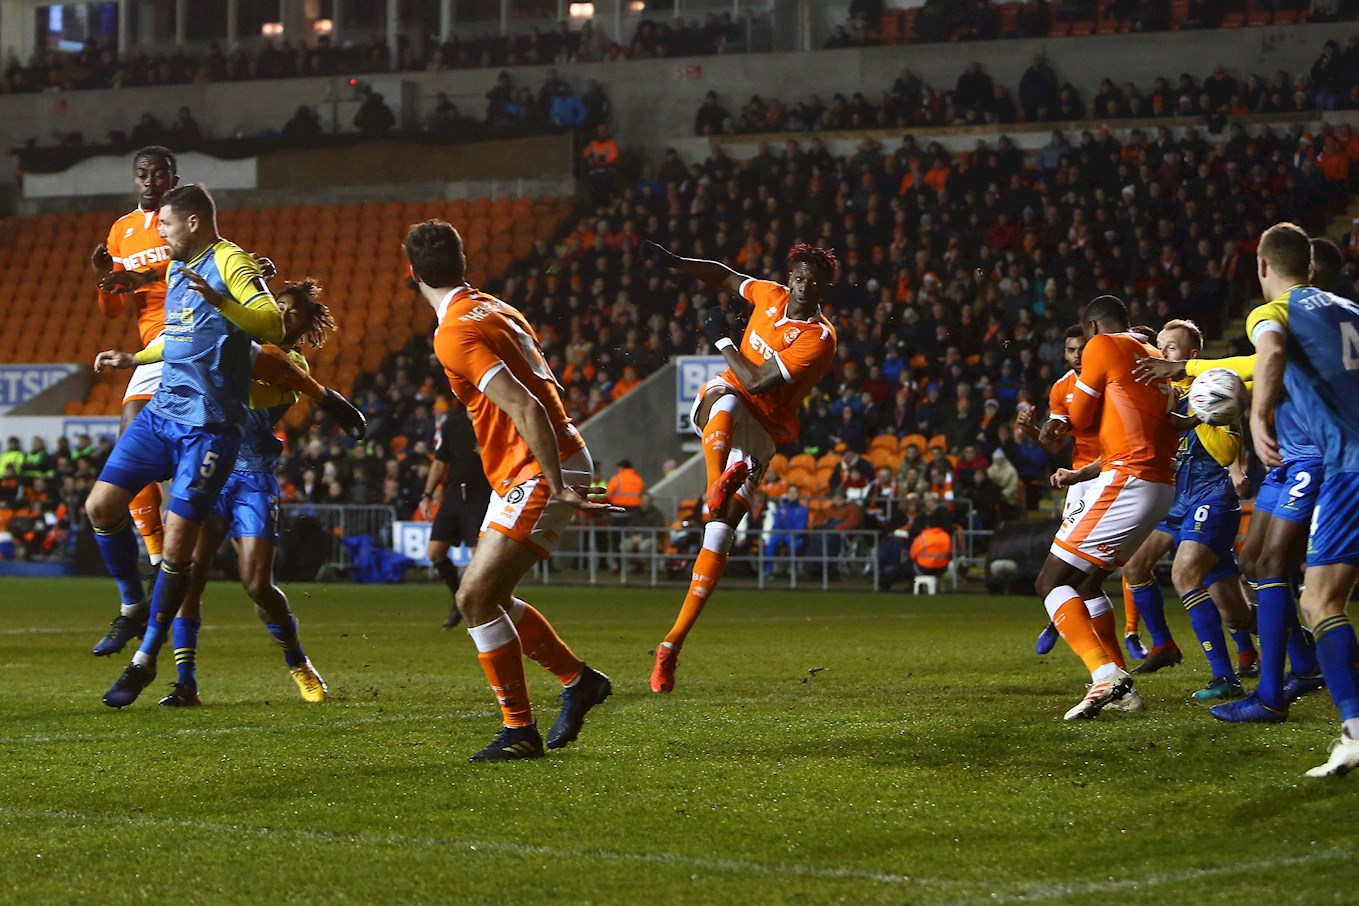 Blackpool edged past Solihull in midweek